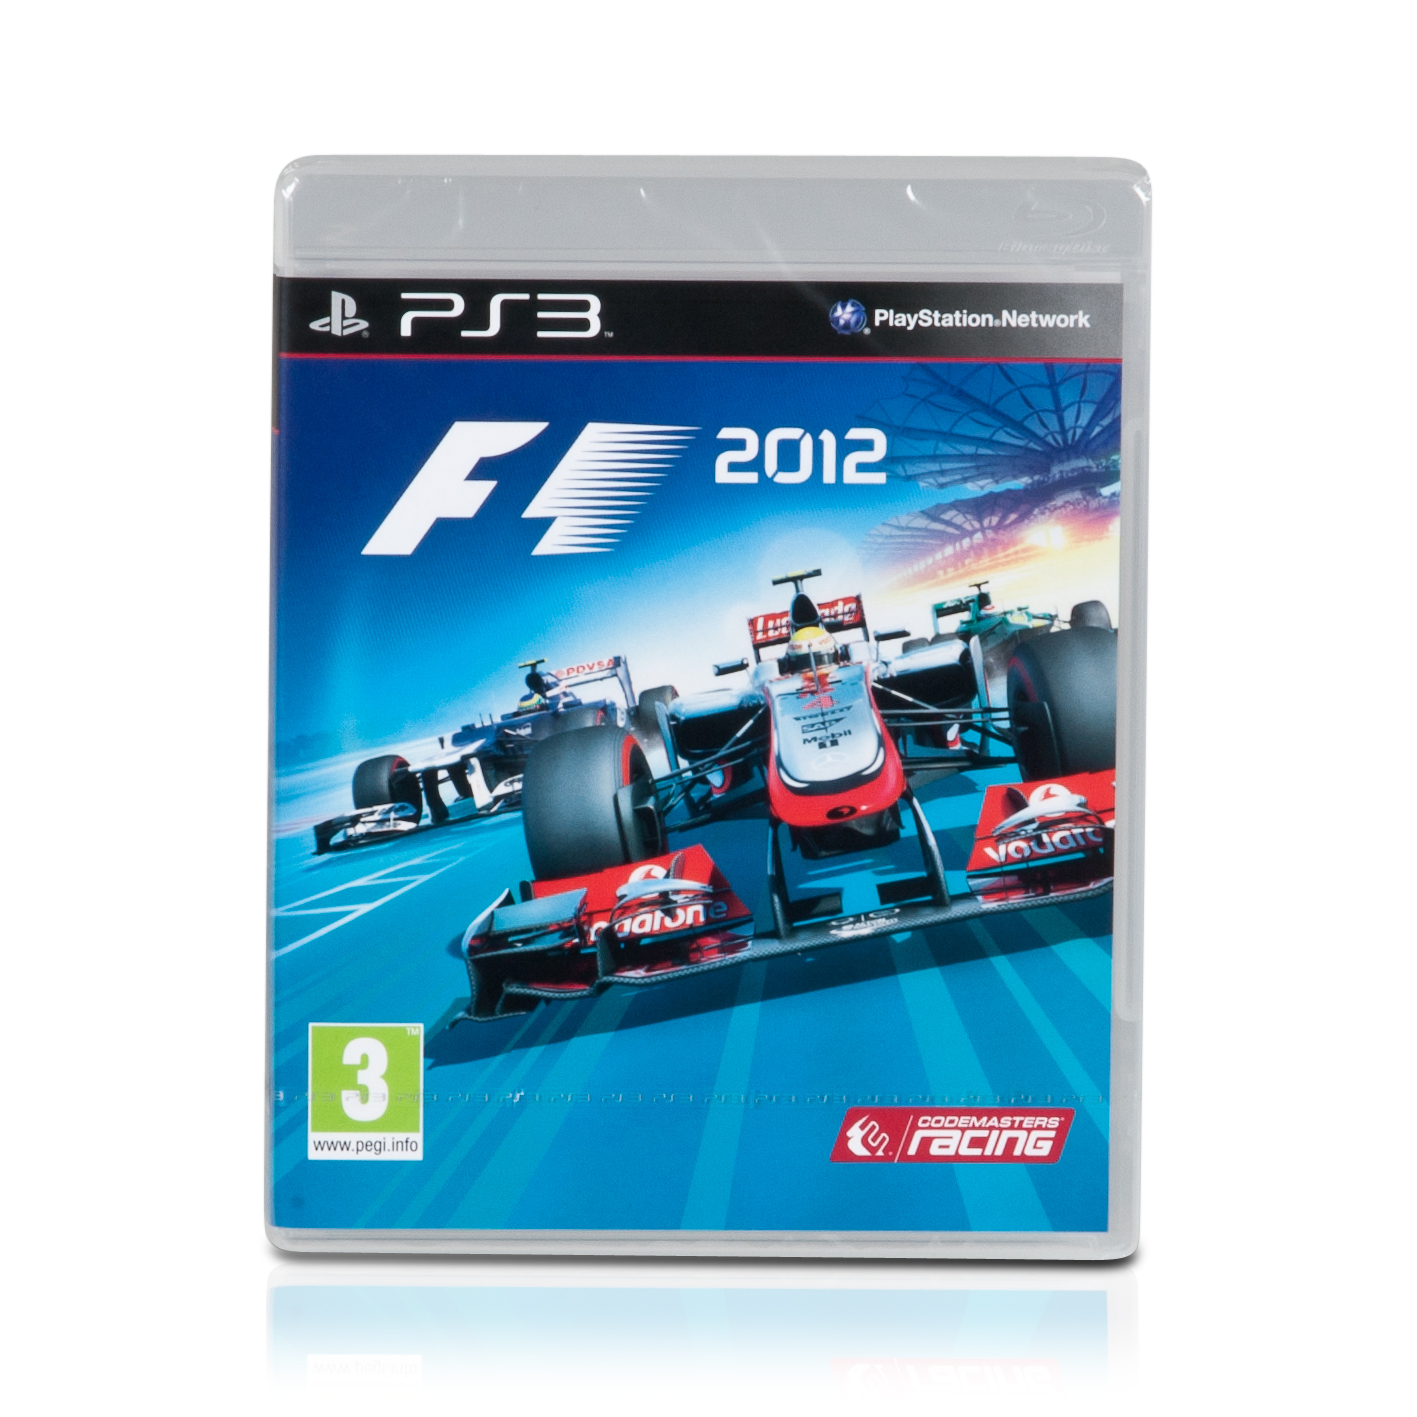 F1 Formula One Video Game 2012 - PS3 - PAL